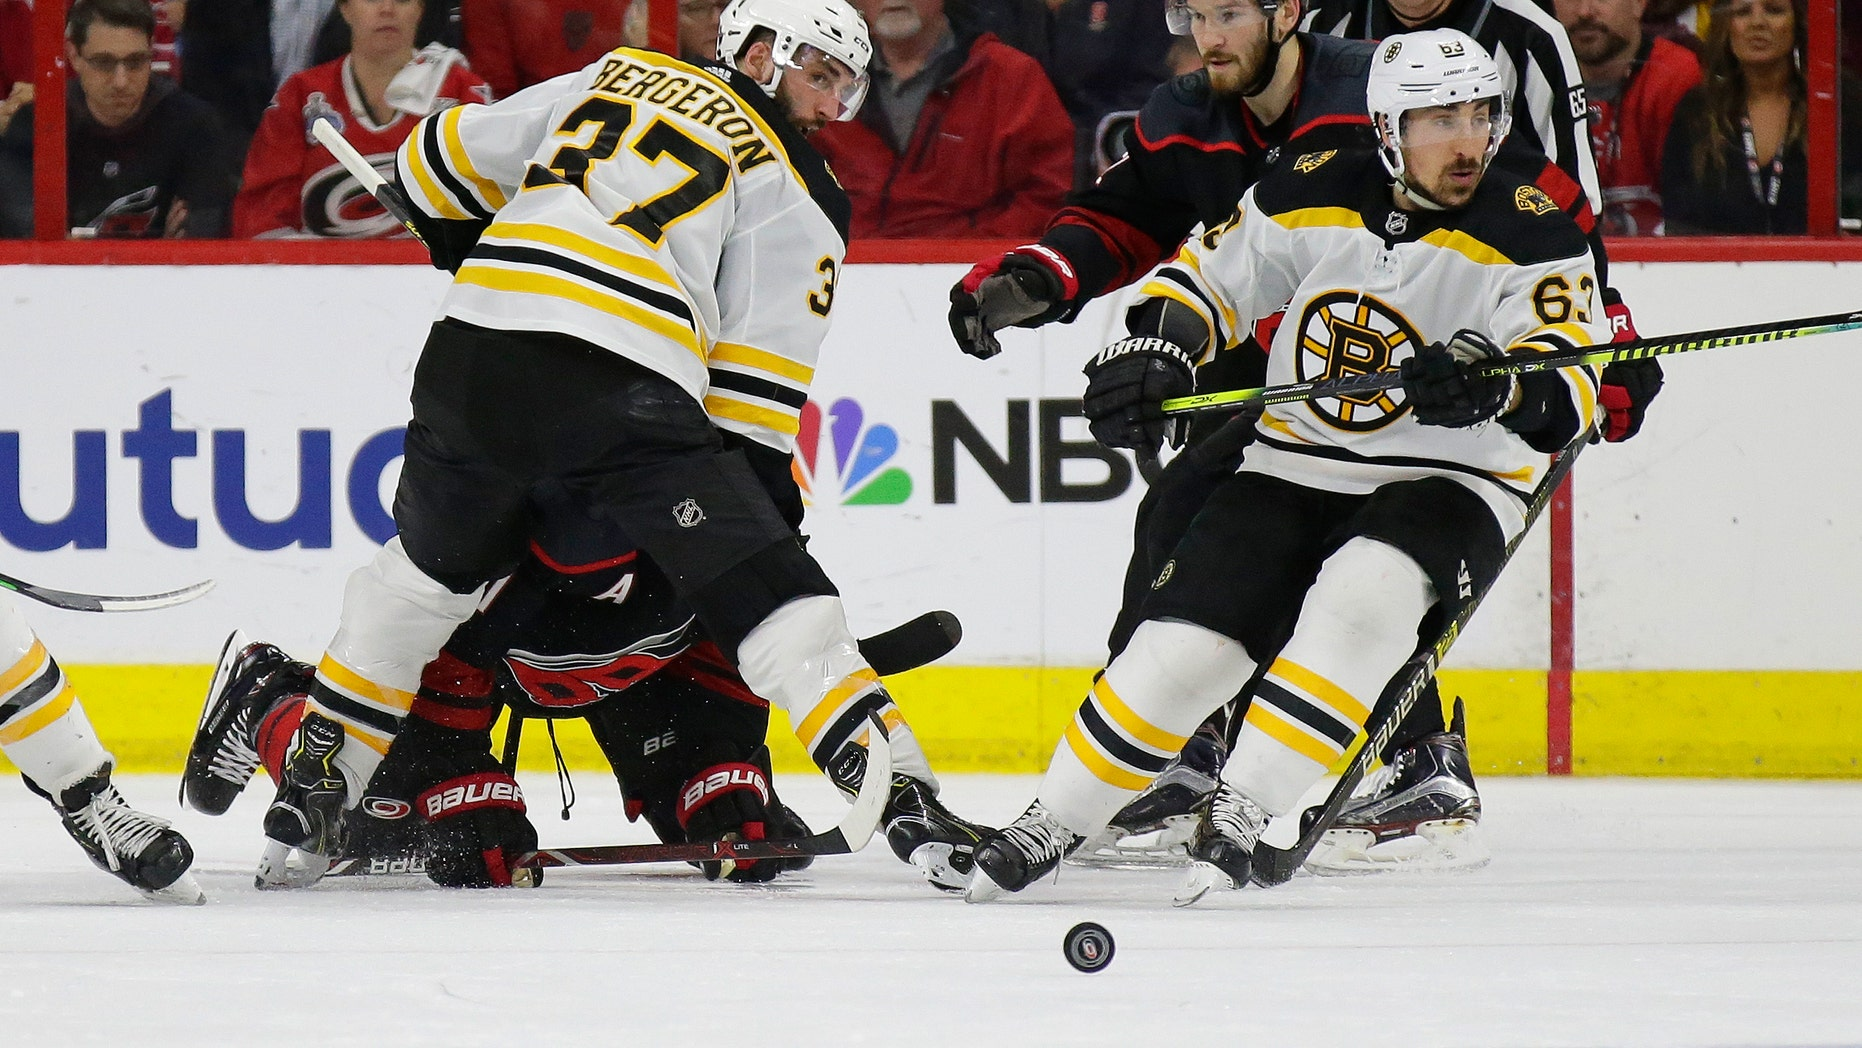 Boston Bruins' Patrice Bergeron (37) and Brad Marchand (63) skate for the puck with Carolina Hurricanes' Brett Pesce (22) and Jordan Staal during the second period in Game 3 of the NHL hockey Stanley Cup Eastern Conference final series in Raleigh, N.C., Tuesday, May 14, 2019. (Associated Press)